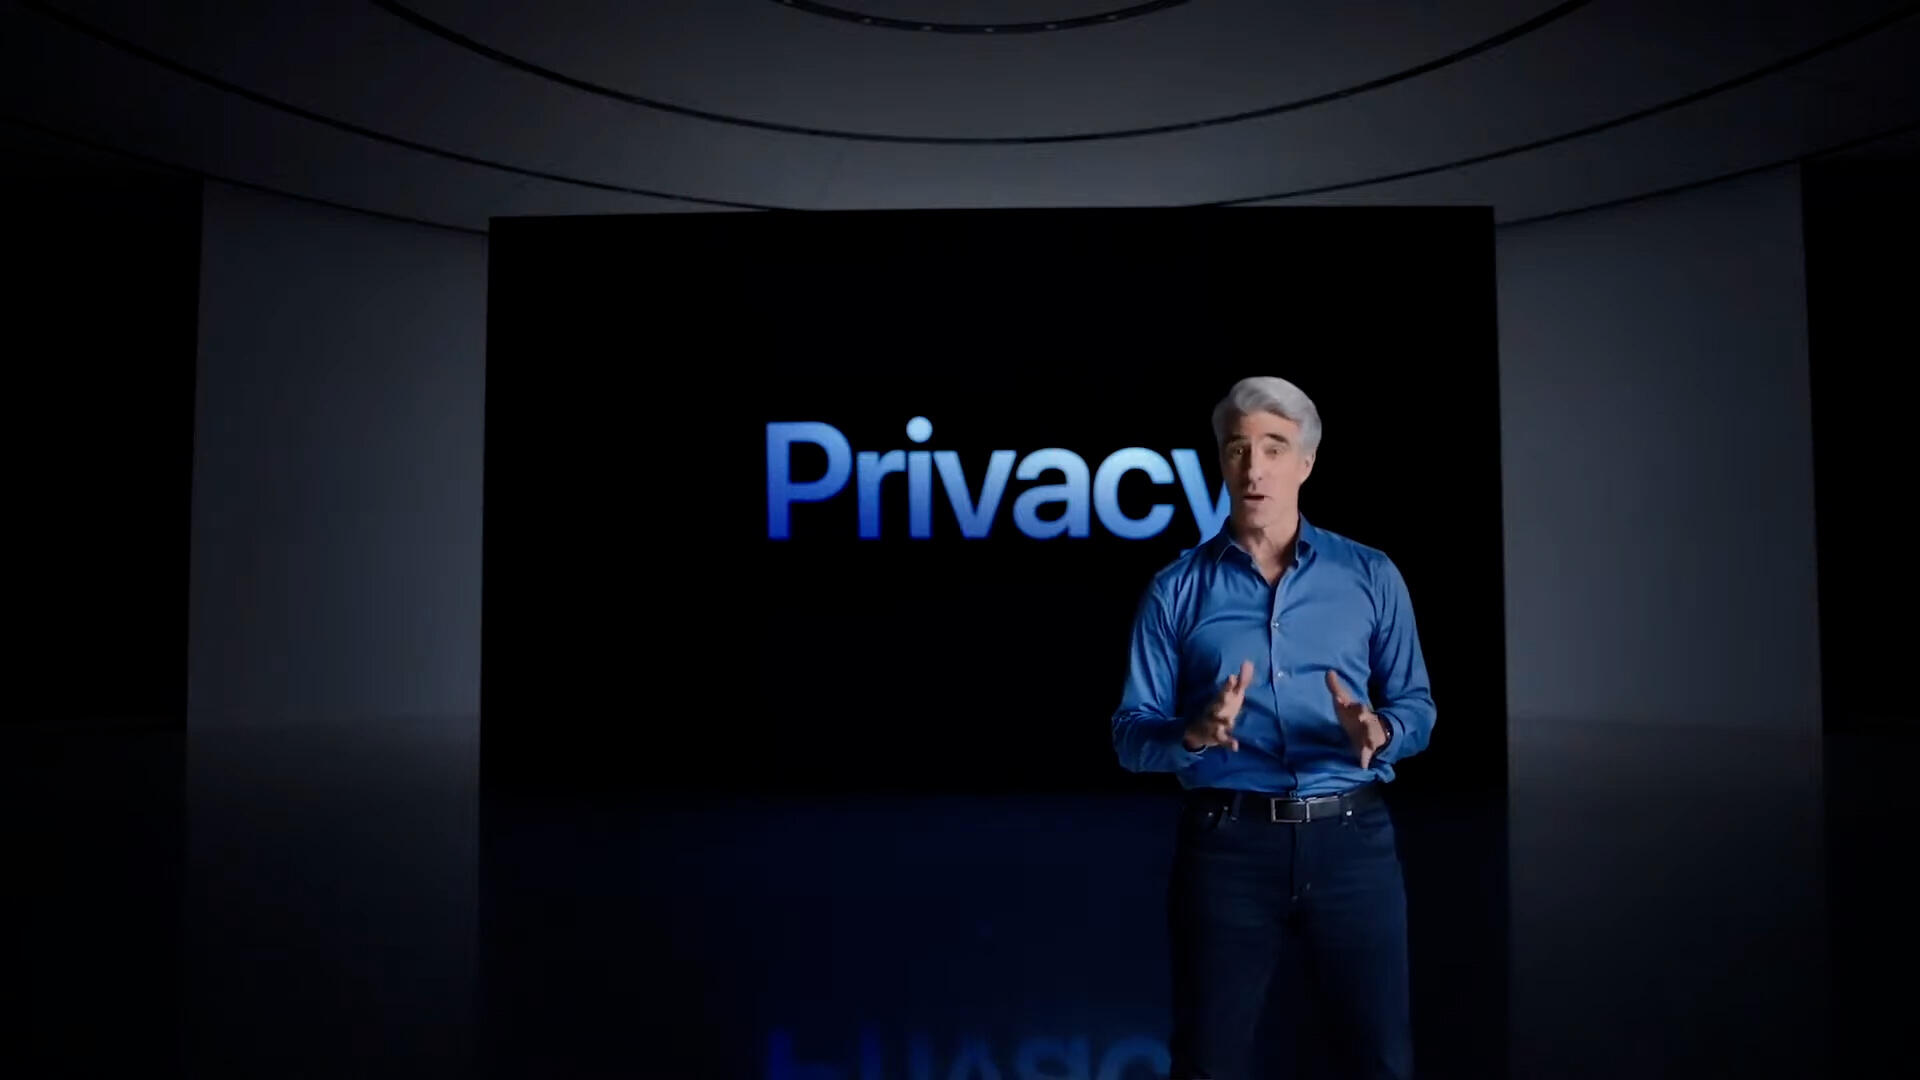 Video: Apple introduces security updates to Mail